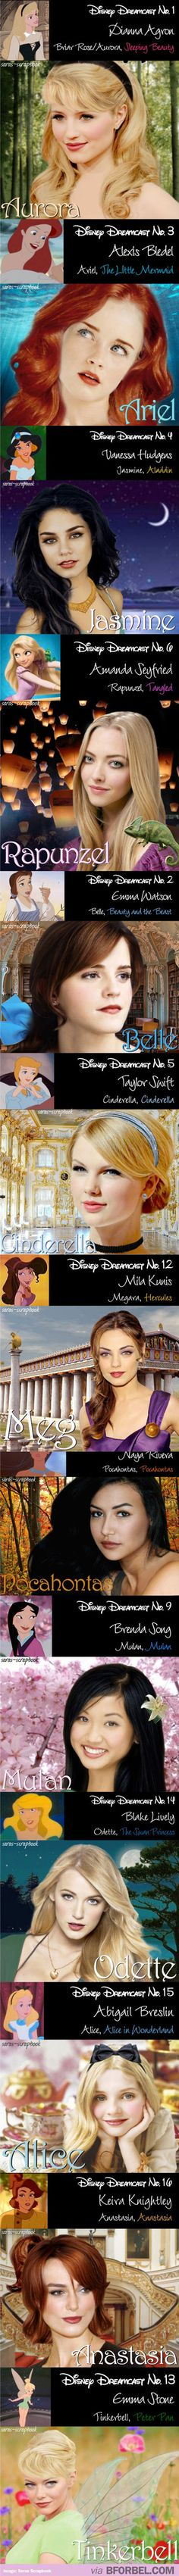 Disney Characters in real life.Ok this is really cool but seriously. Antastasia and Odette ARE NOT DISNEY.